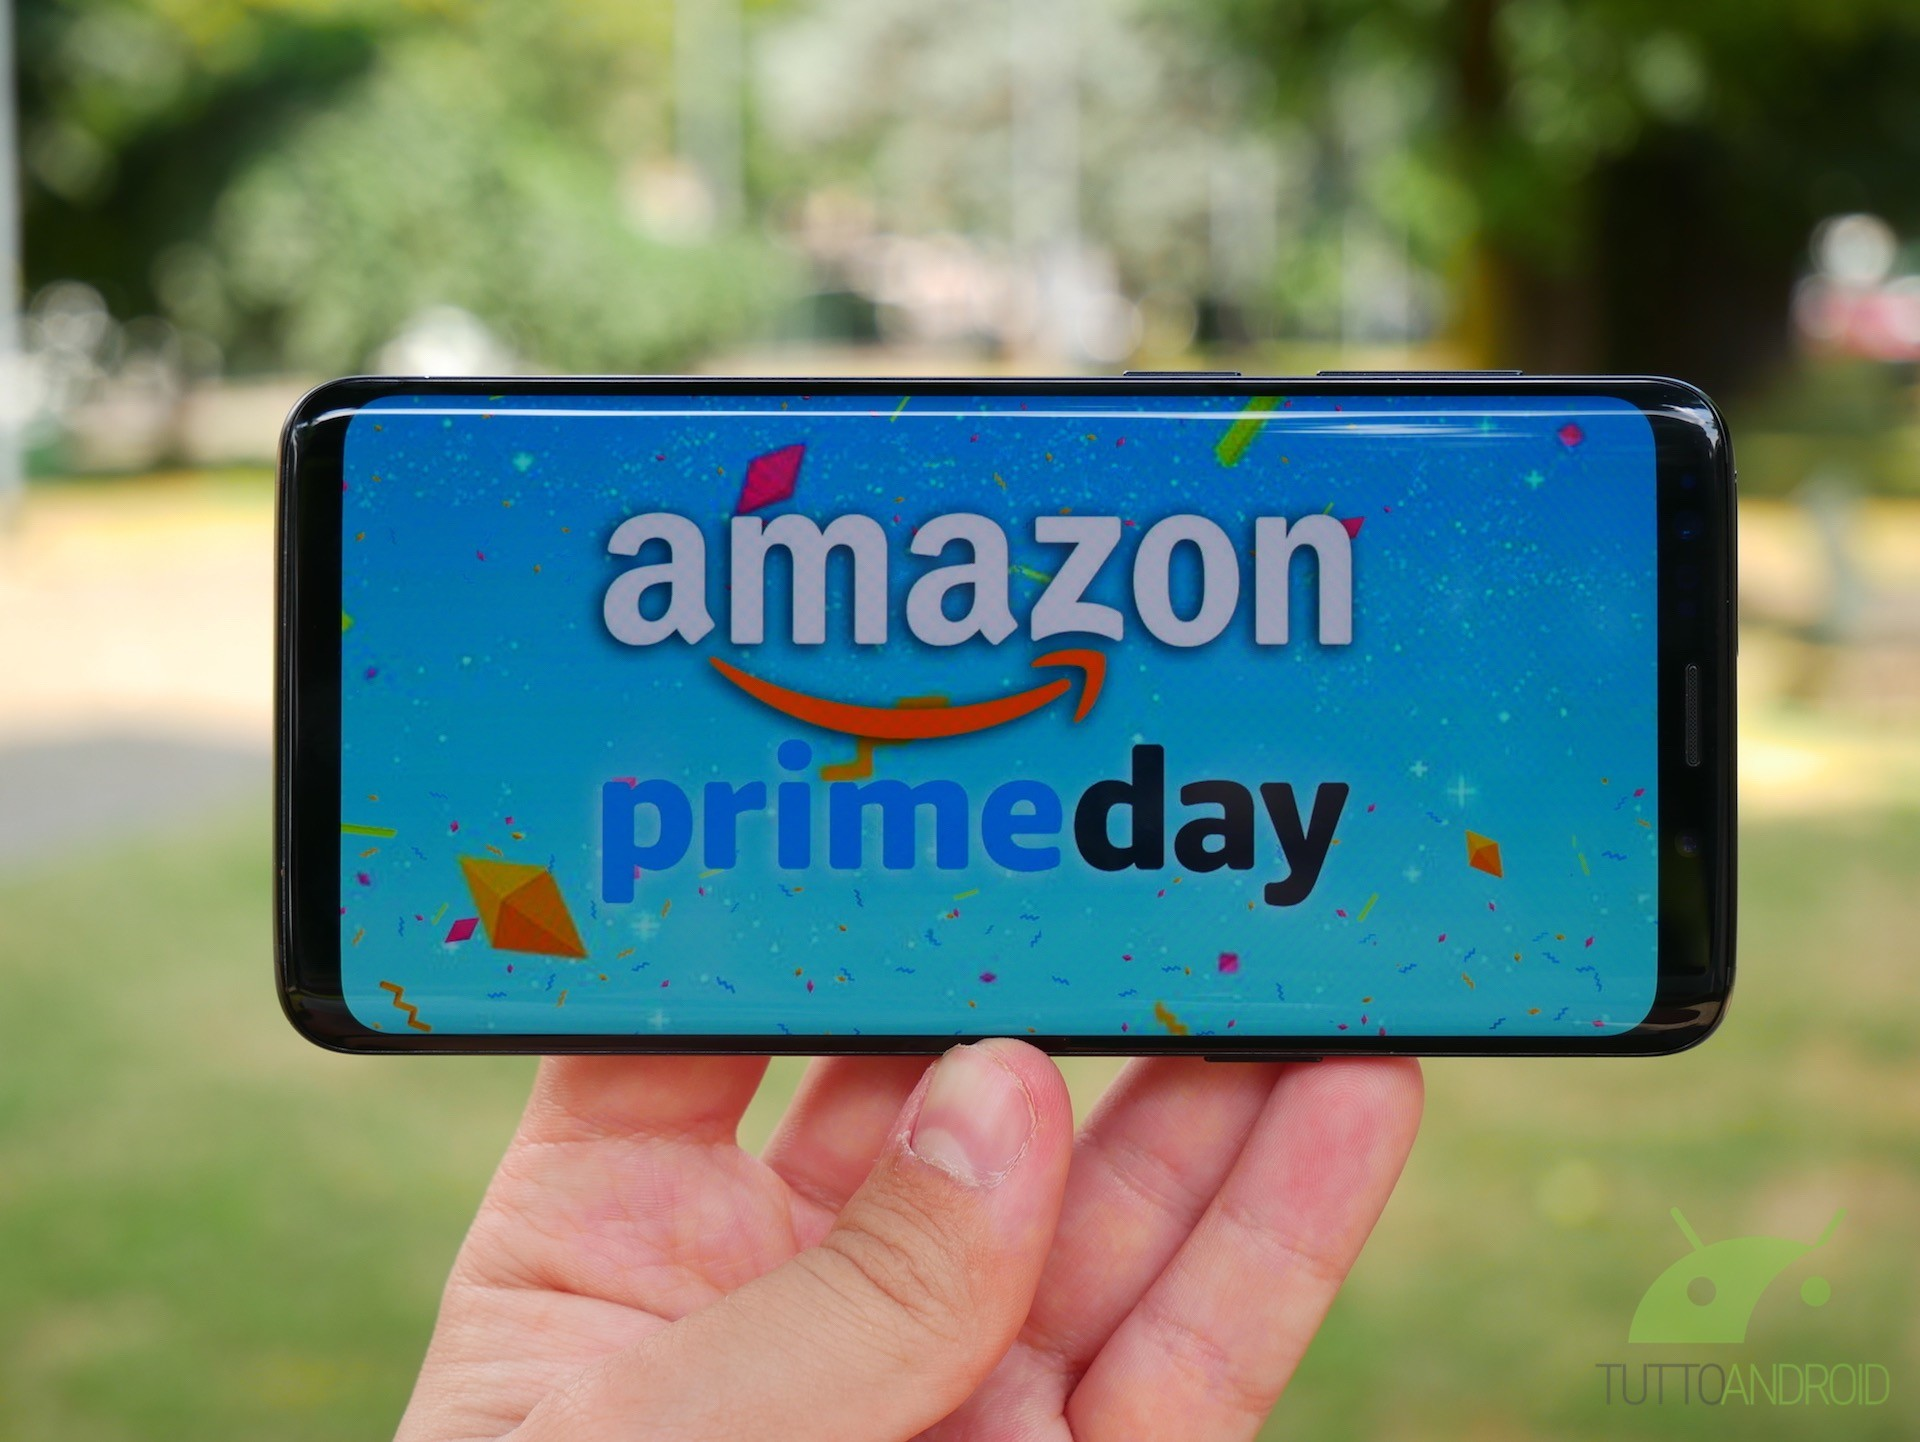 Tanti smartphone e tablet Android in offerta per l'Amazon Prime Day di oggi, 13 ottobre